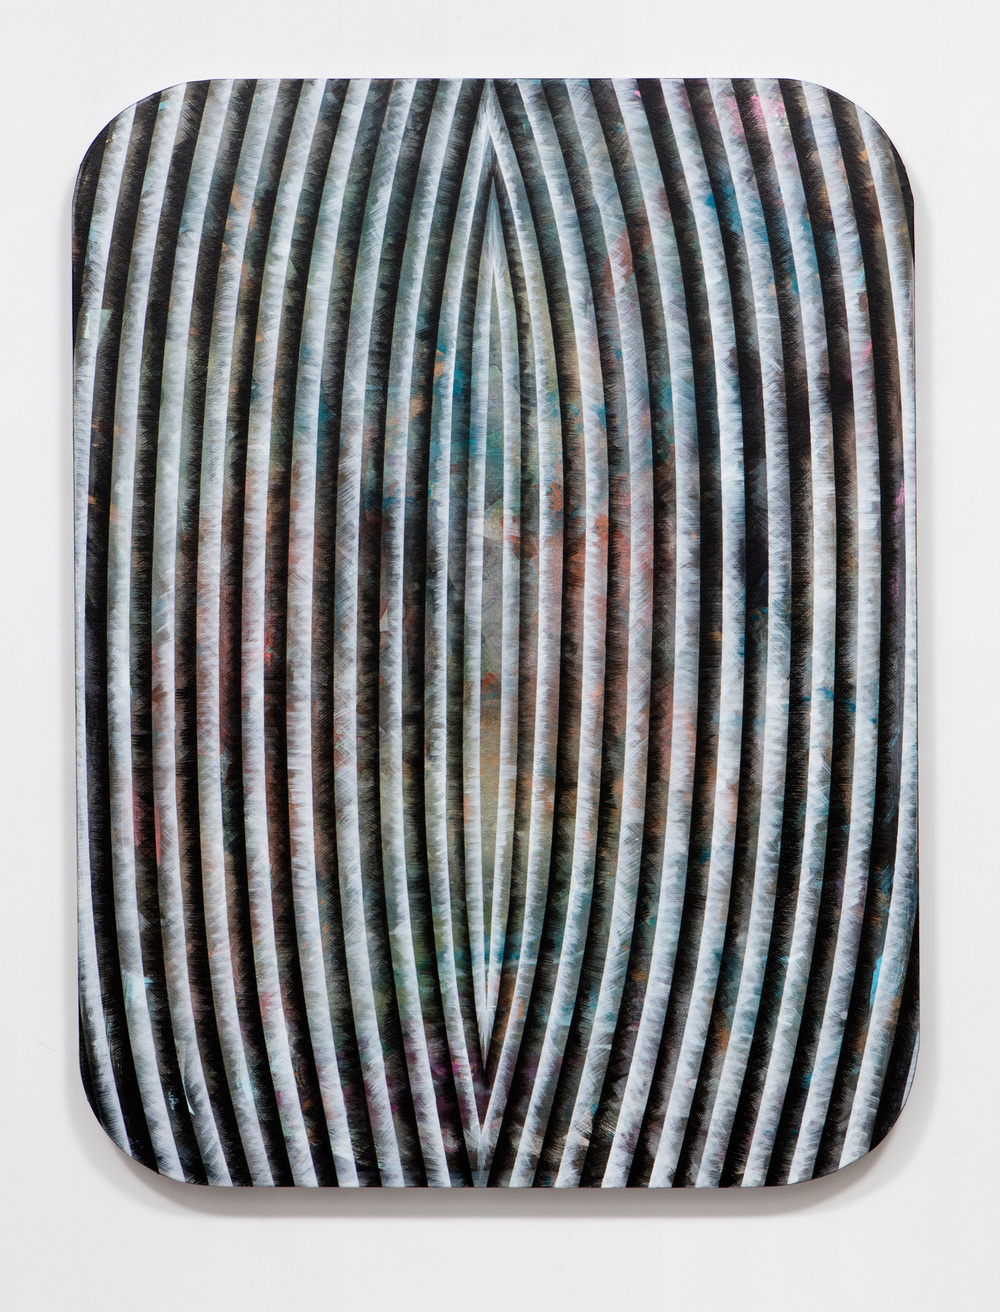 SLATE: Radial Painting No. 1 (after Fontana)  , 2015 Golden acrylic on canvas stretched over custom panel 48 x 36 inches